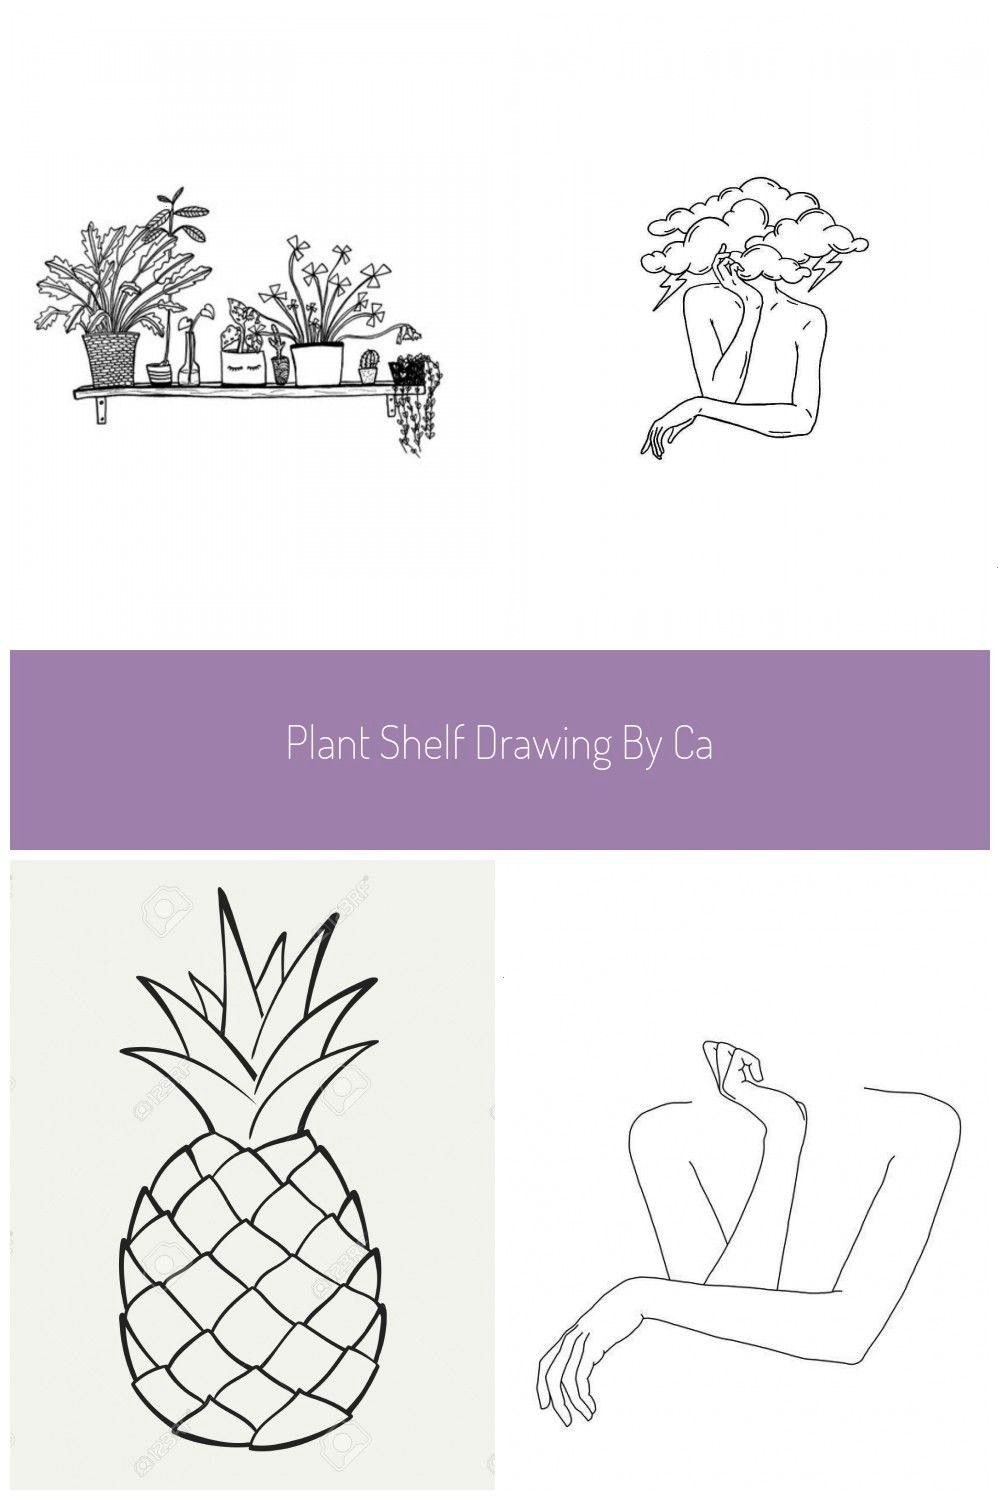 shelf drawing by Carissa Tanton Available as a print on Etsy Botanical illustration Black and white line drawing Crazy plant lady black and white House Plant Shelfie Illu...